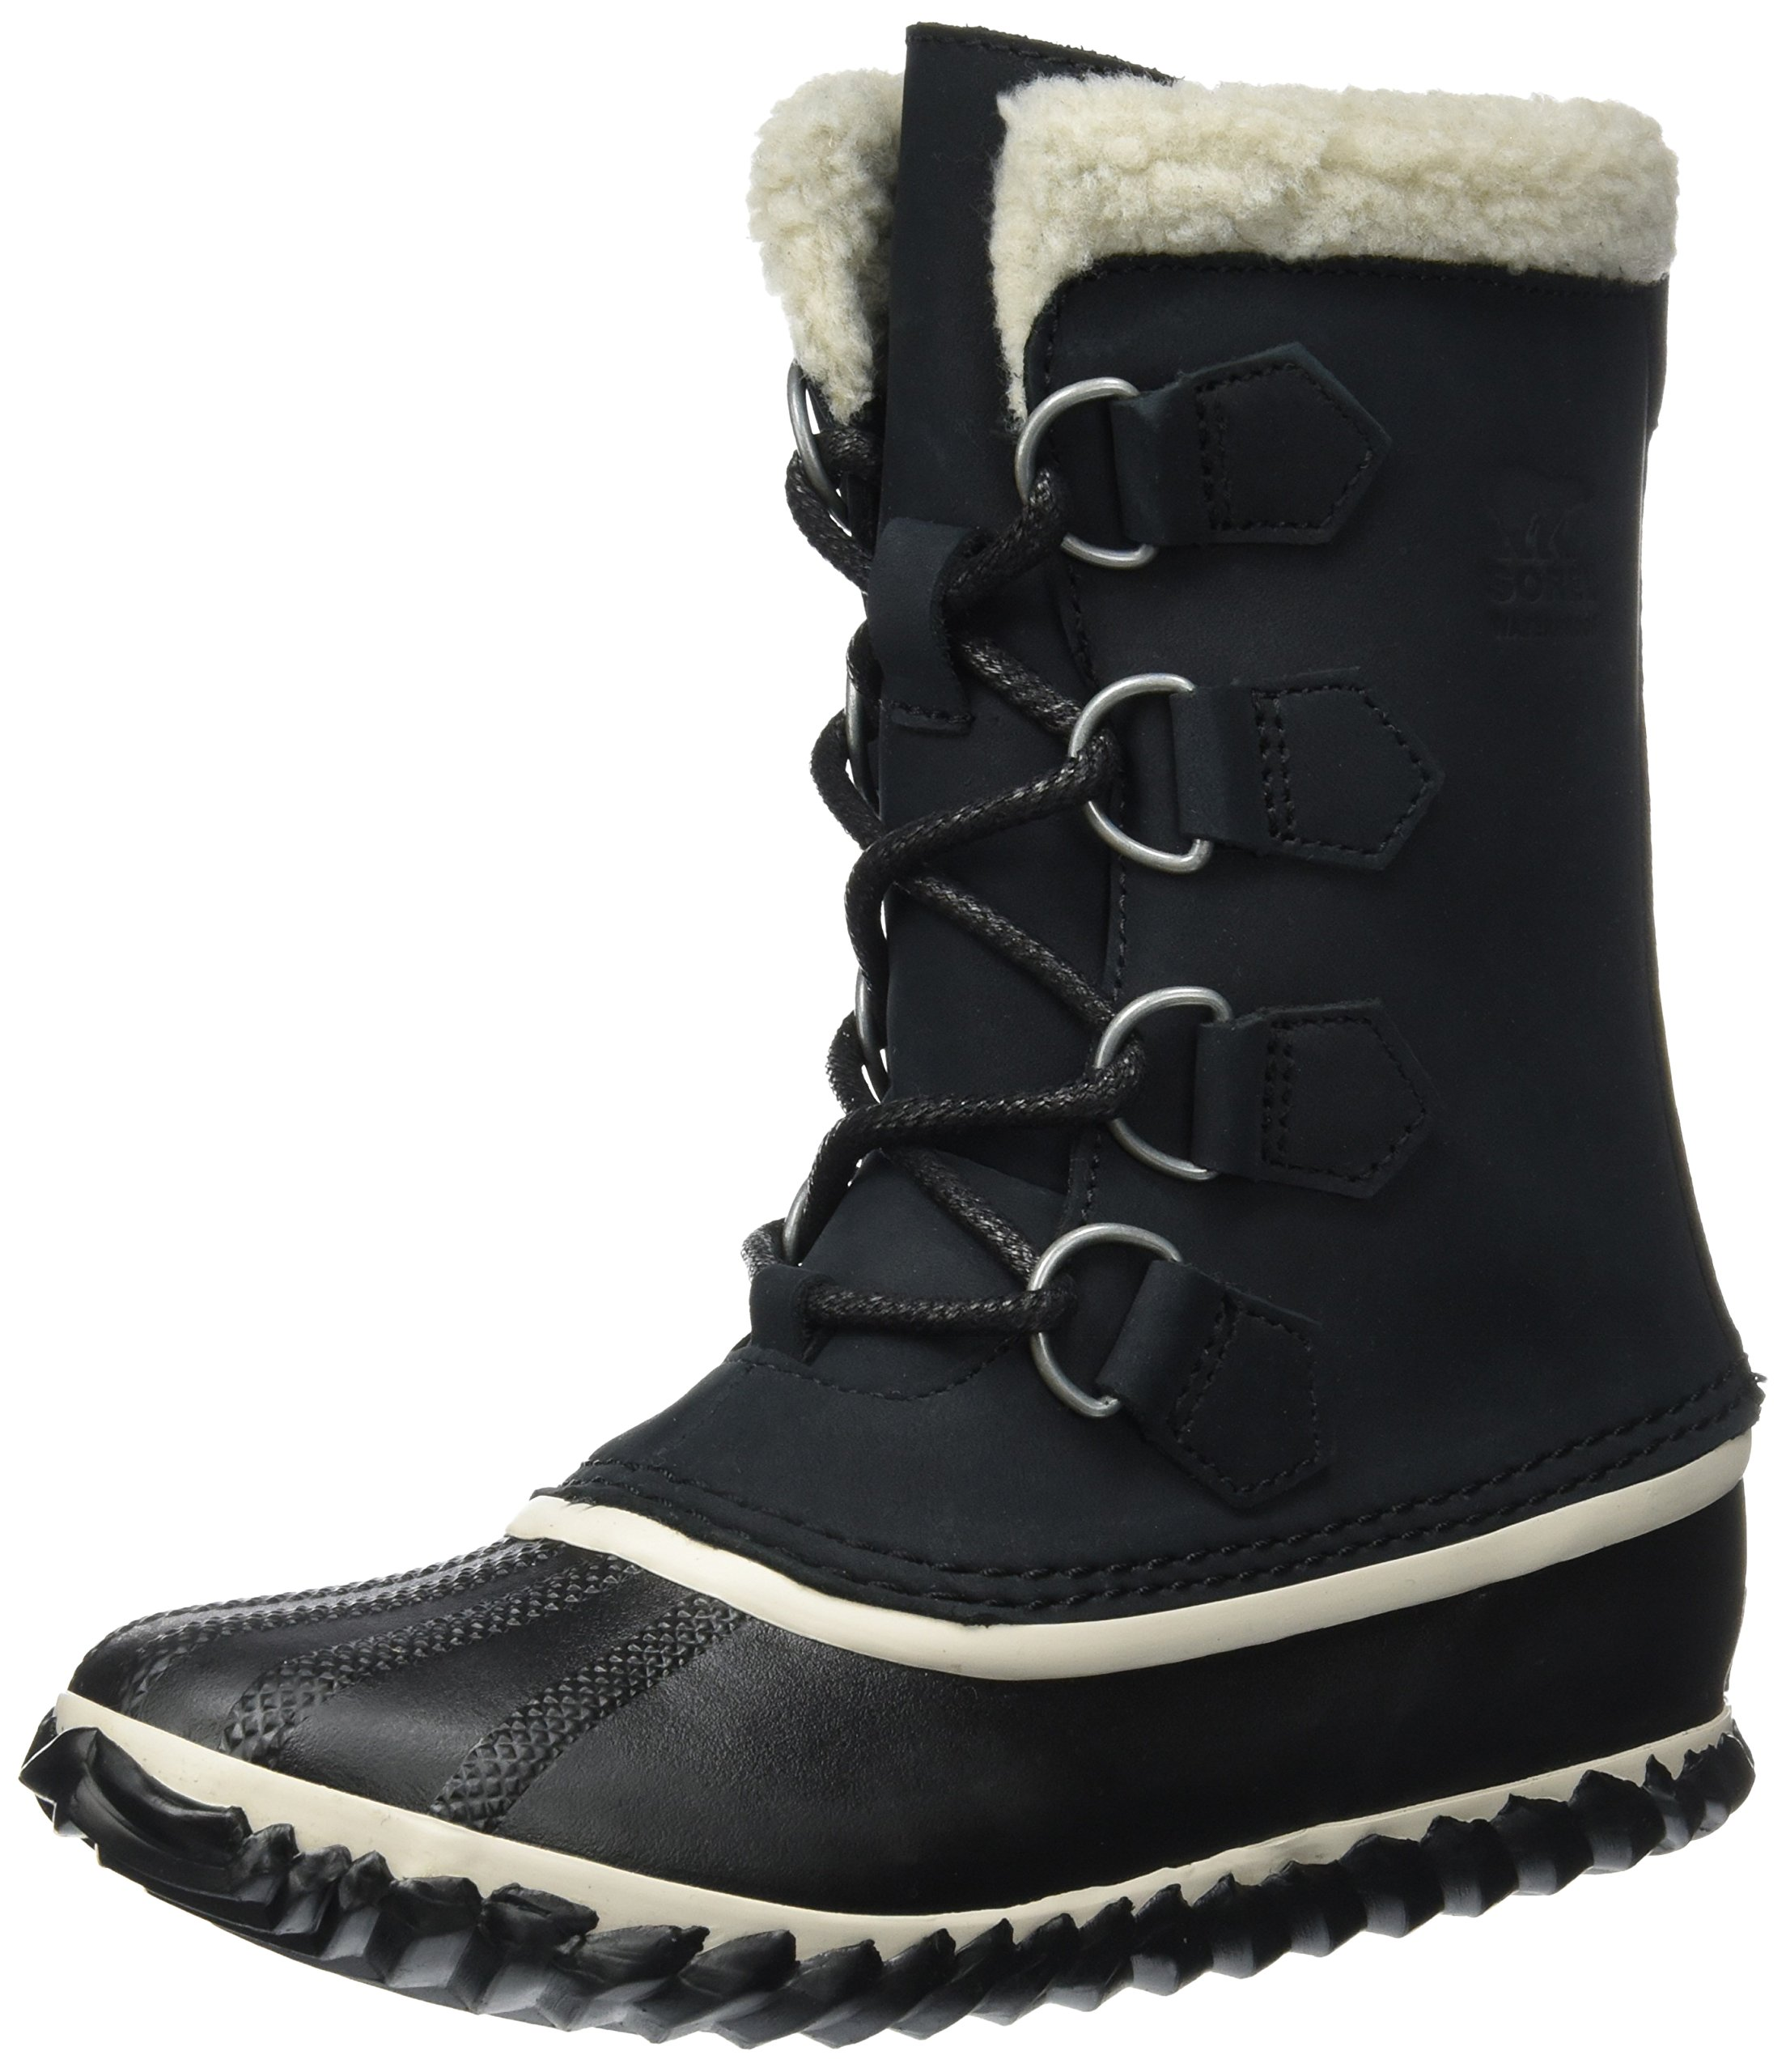 SOREL Women's Caribou Slim Boots, Black, 8 B(M) US